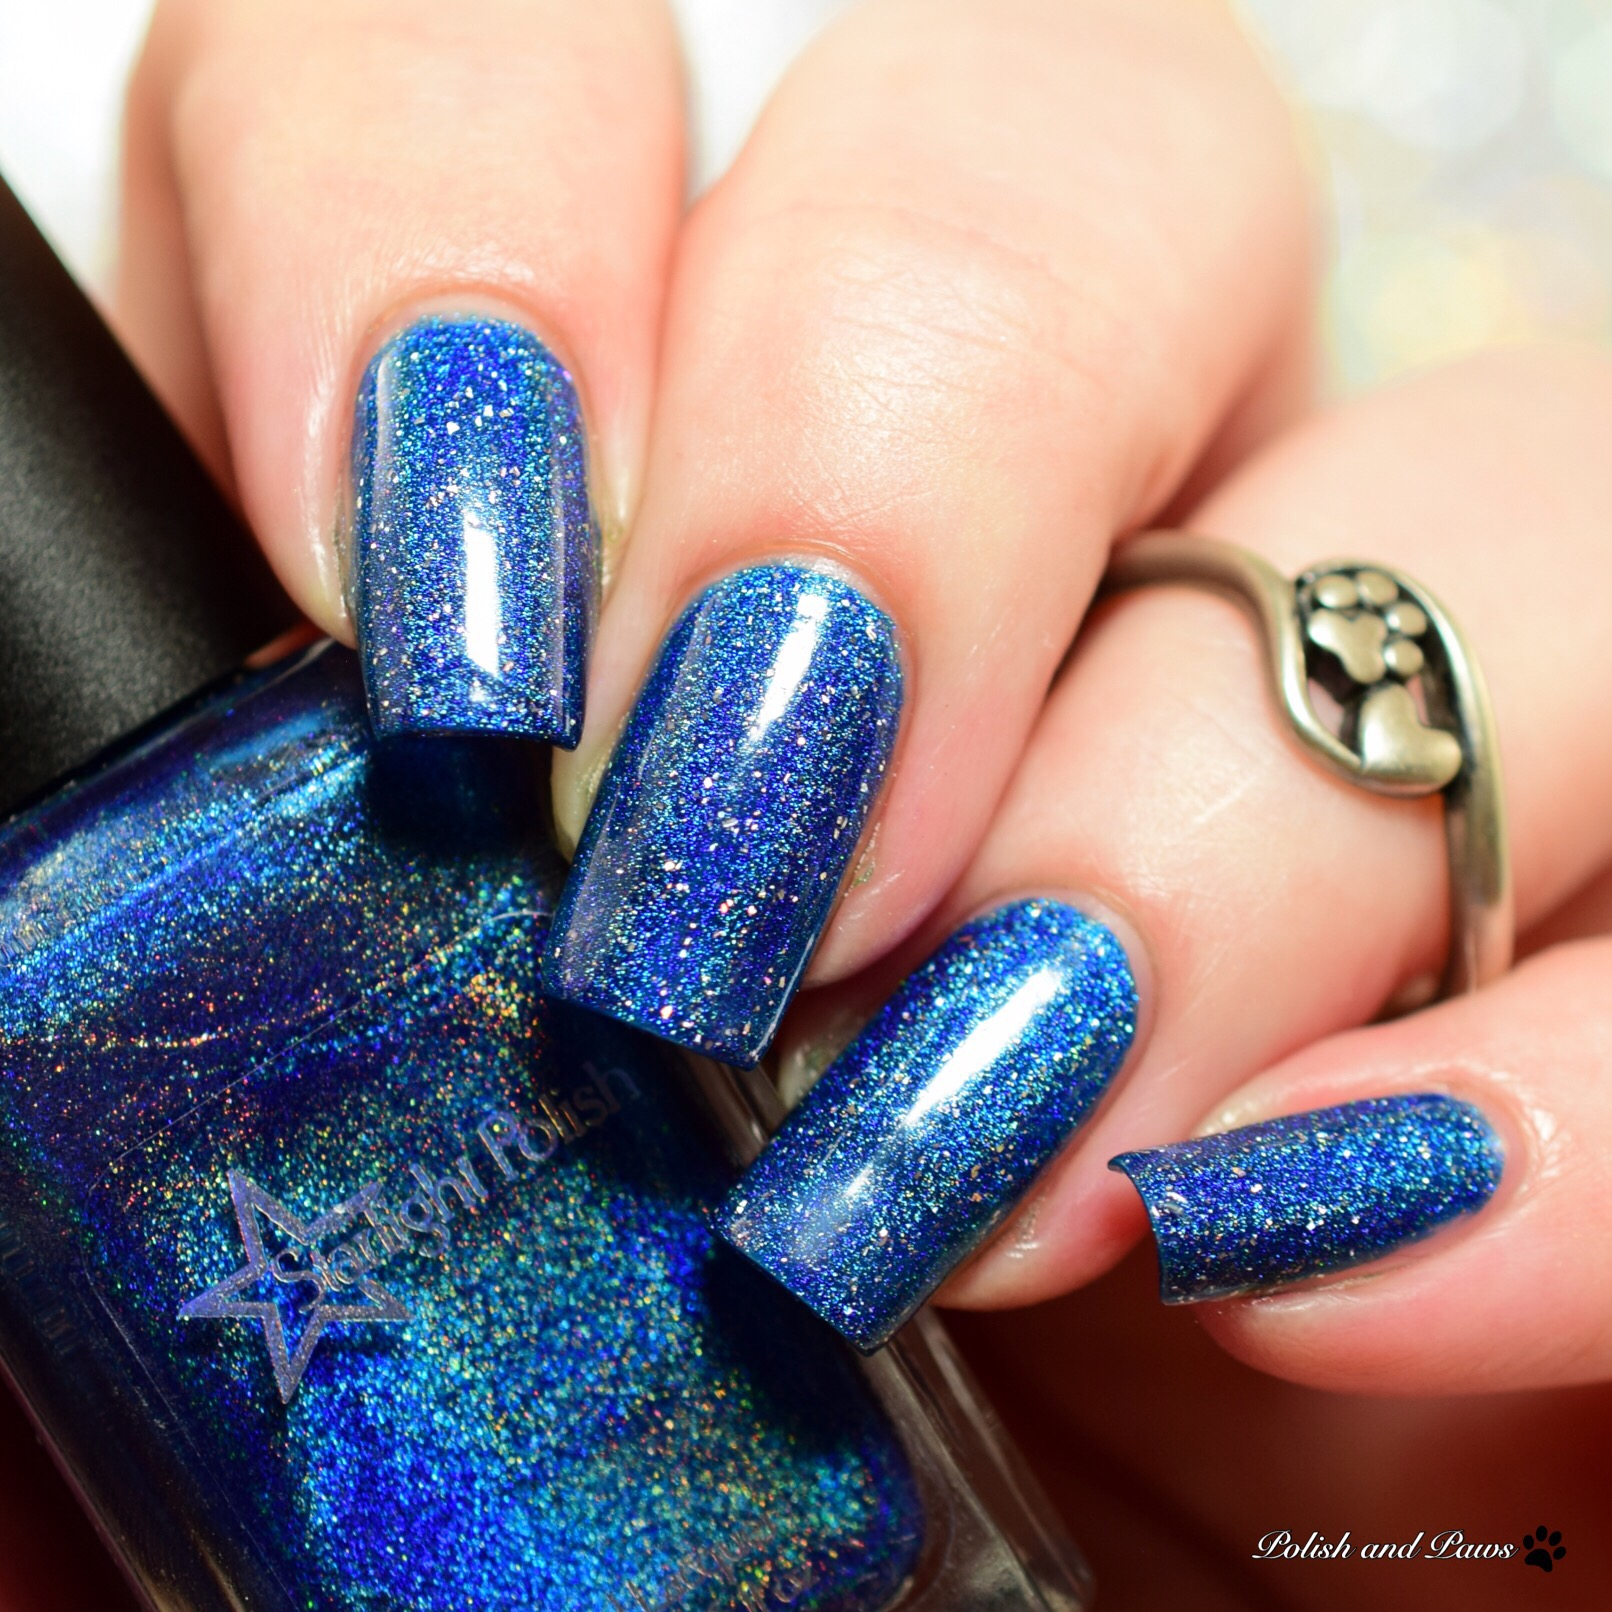 Starlight Polish Make it Sparkle layered over Winter Skies